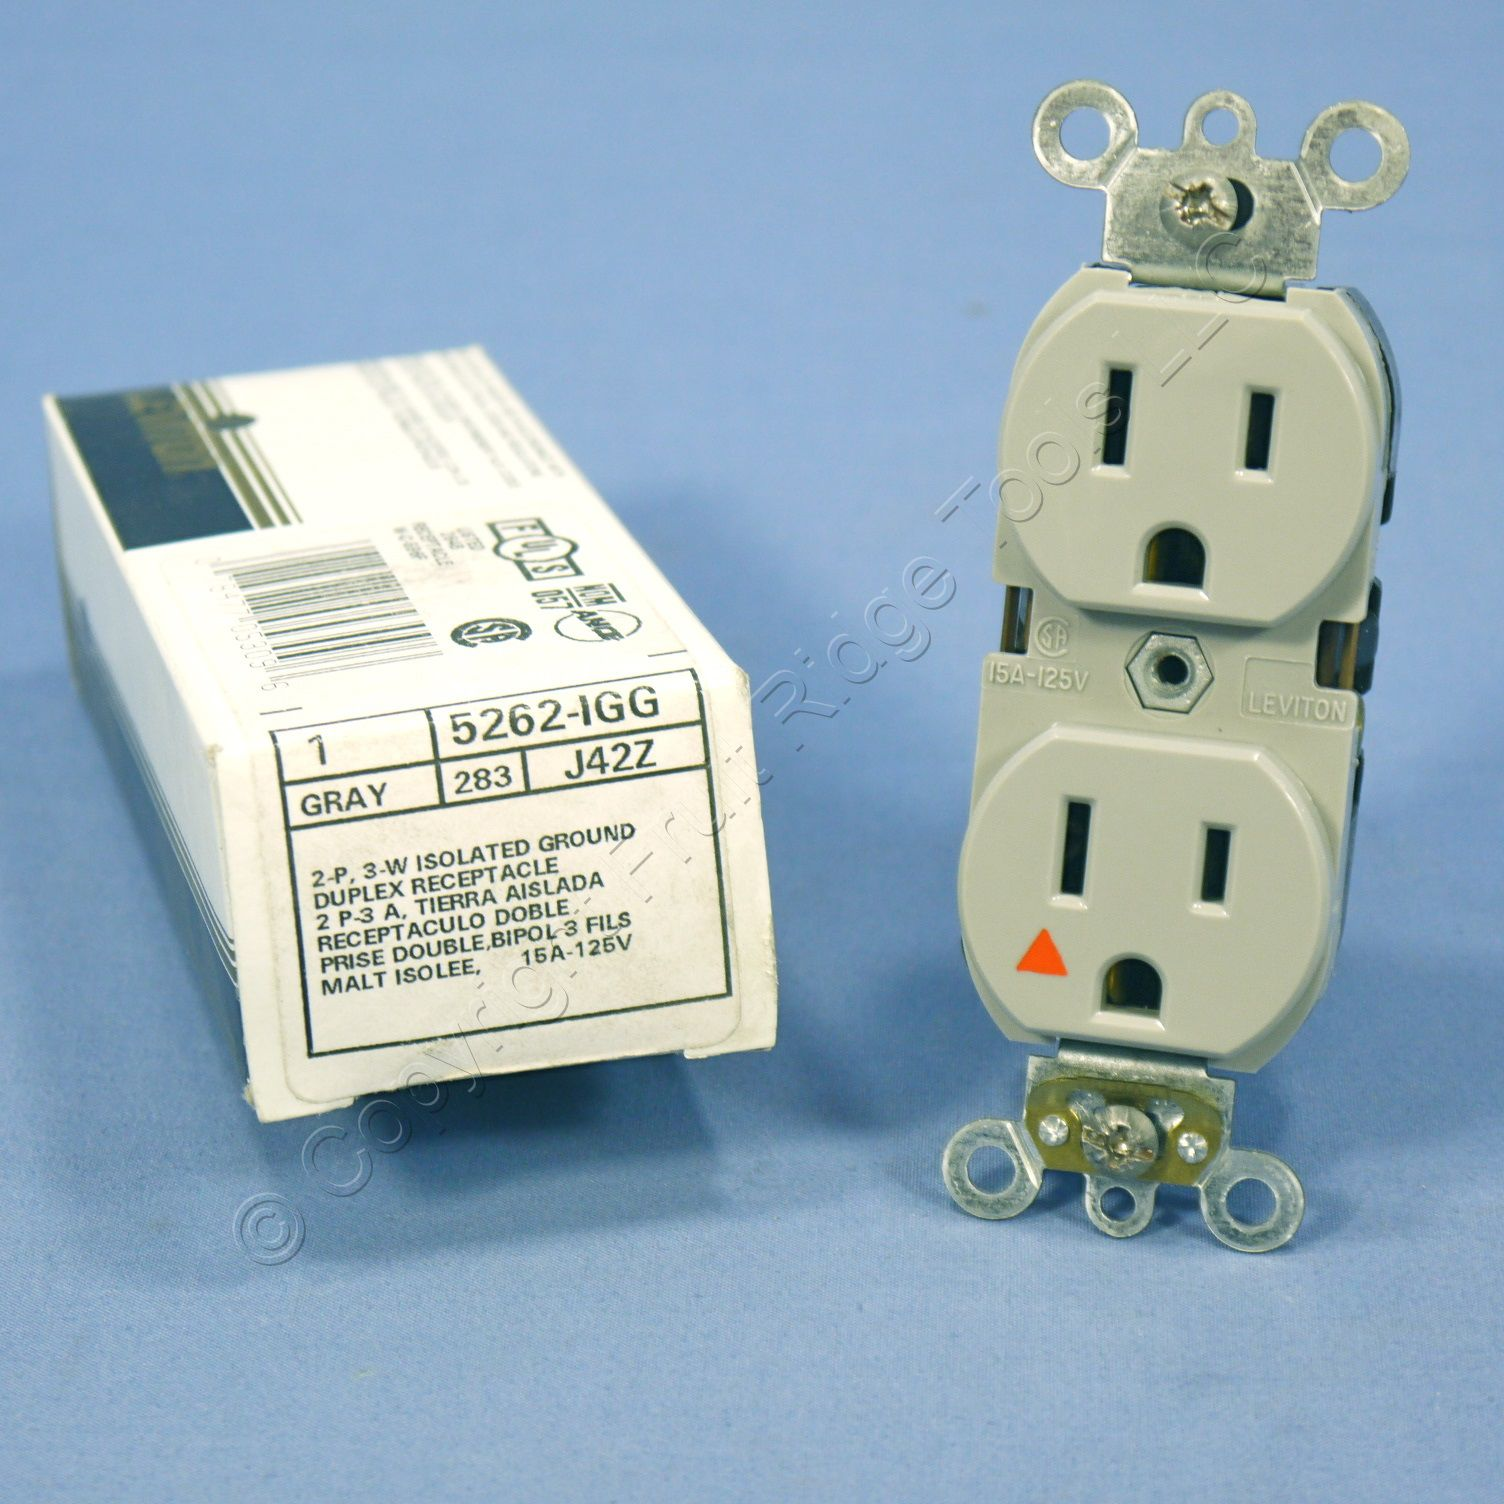 Leviton Gray Iso Ground Hospital Receptacle Duplex Outlet 15a 5262